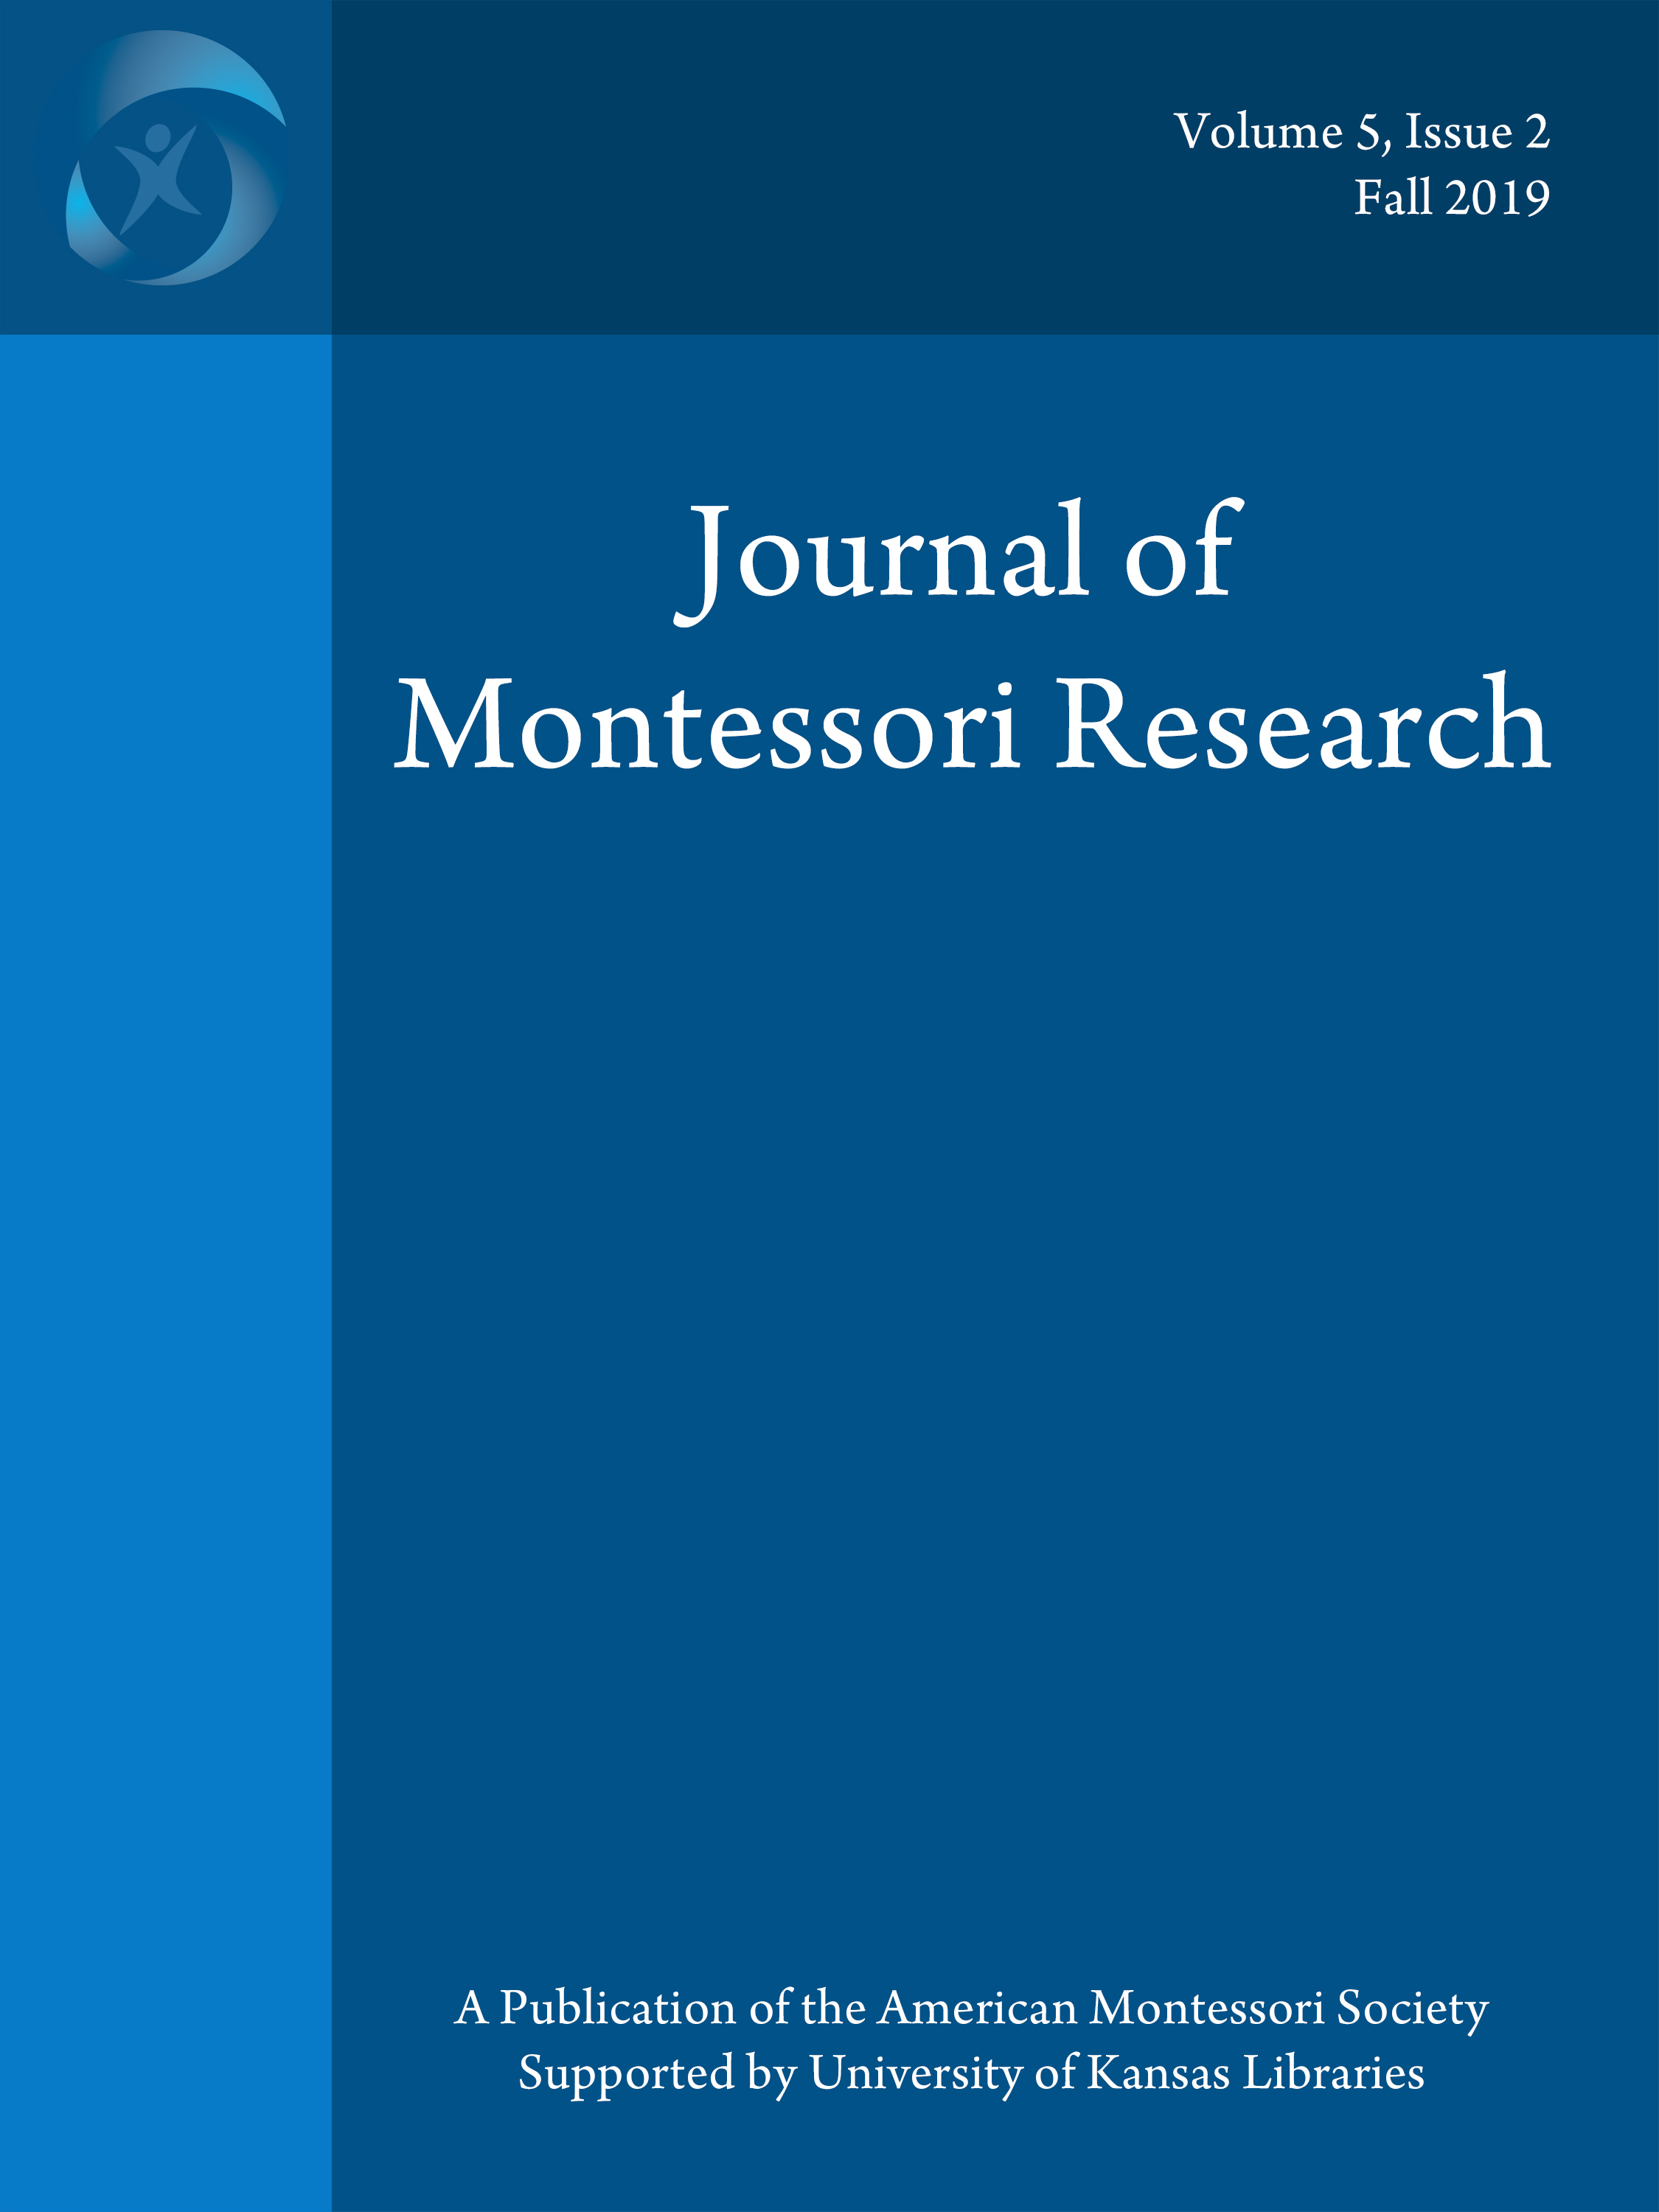 Cover of Journal of Montessori Research